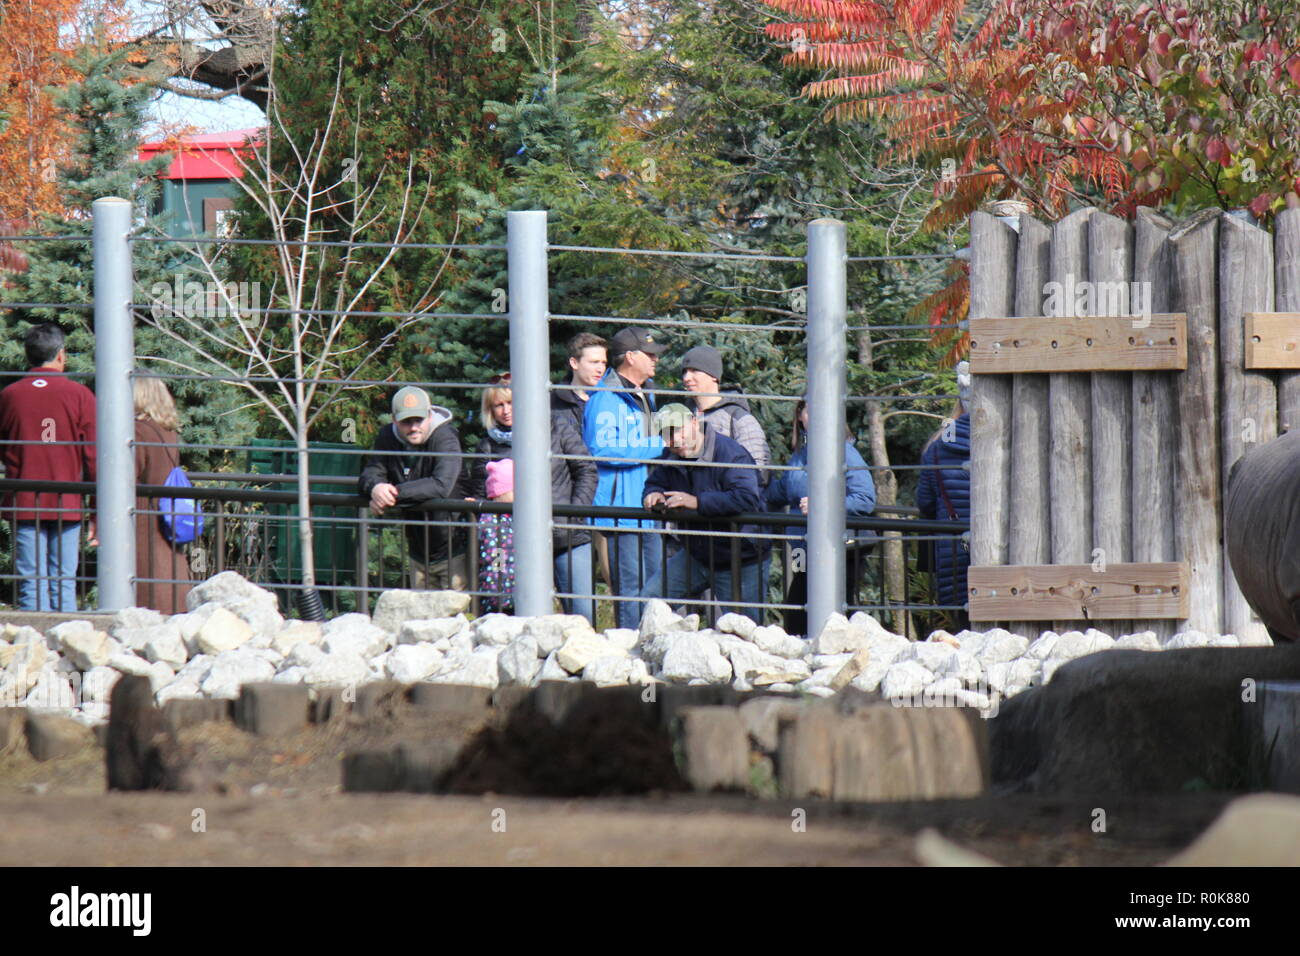 People watching the zoo animals thru the steel guard fence. raw imagery #rawimagery - Stock Image